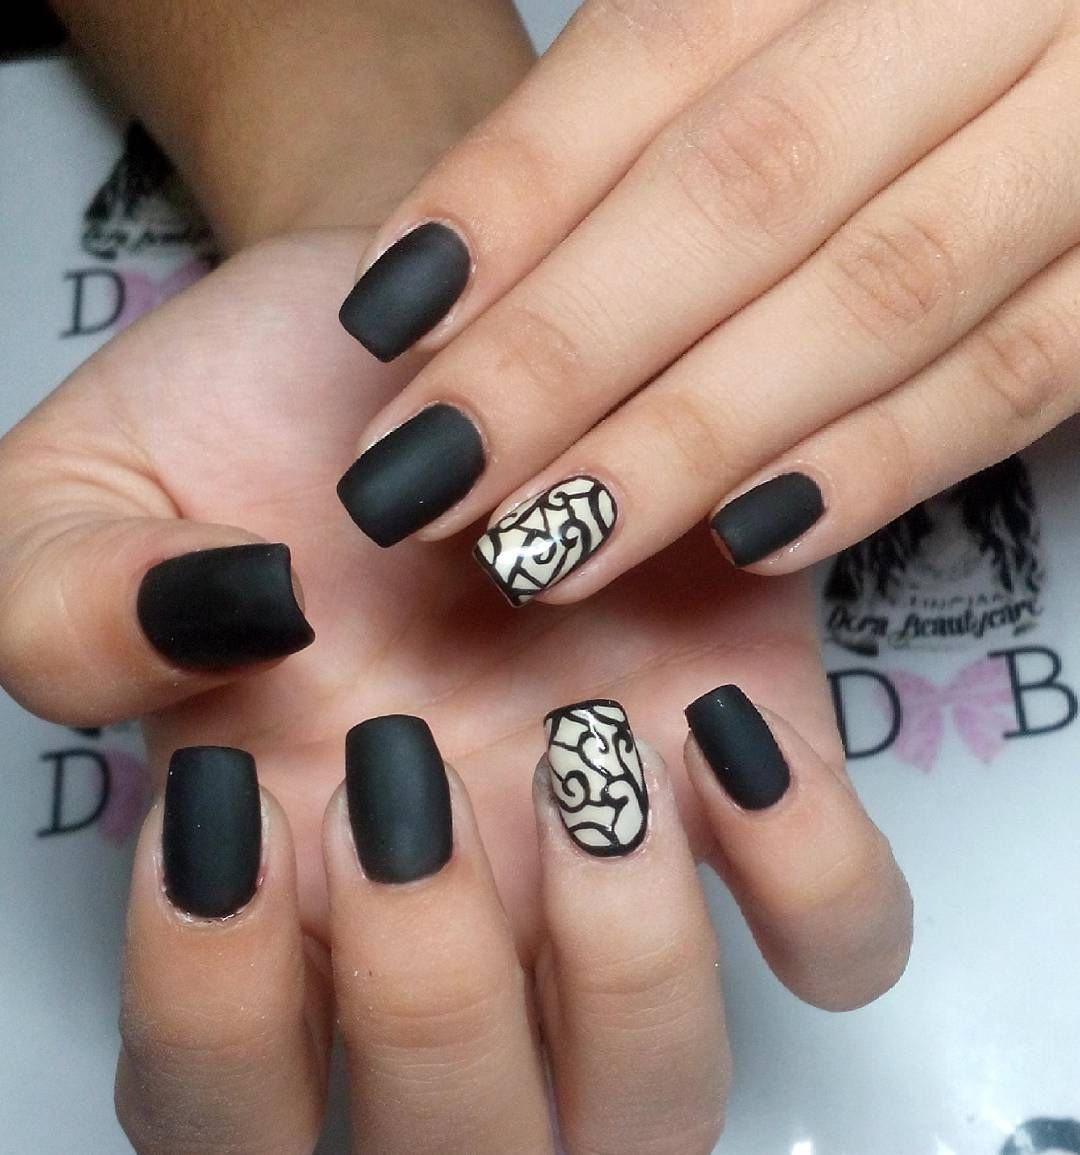 Designed Black Nail Art For Women | Beauty | Pinterest | Black ...